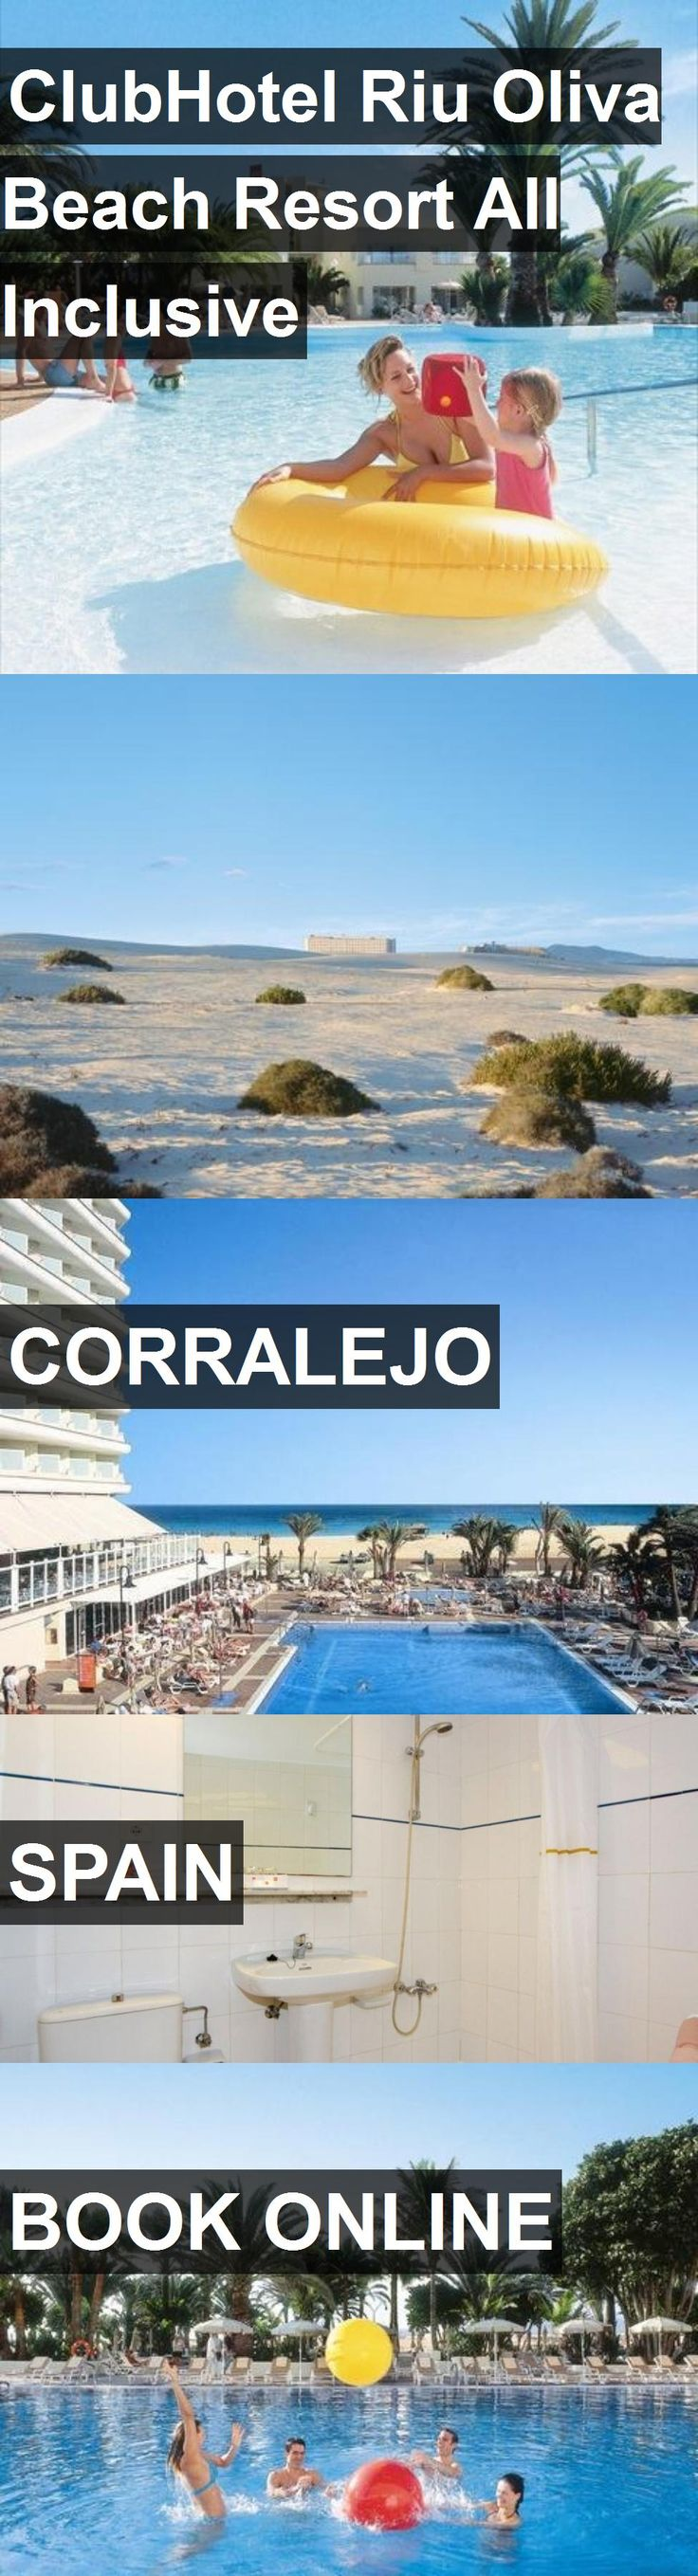 Hotel ClubHotel Riu Oliva Beach Resort All Inclusive in Corralejo, Spain. For more information, photos, reviews and best prices please follow the link. #Spain #Corralejo #hotel #travel #vacation